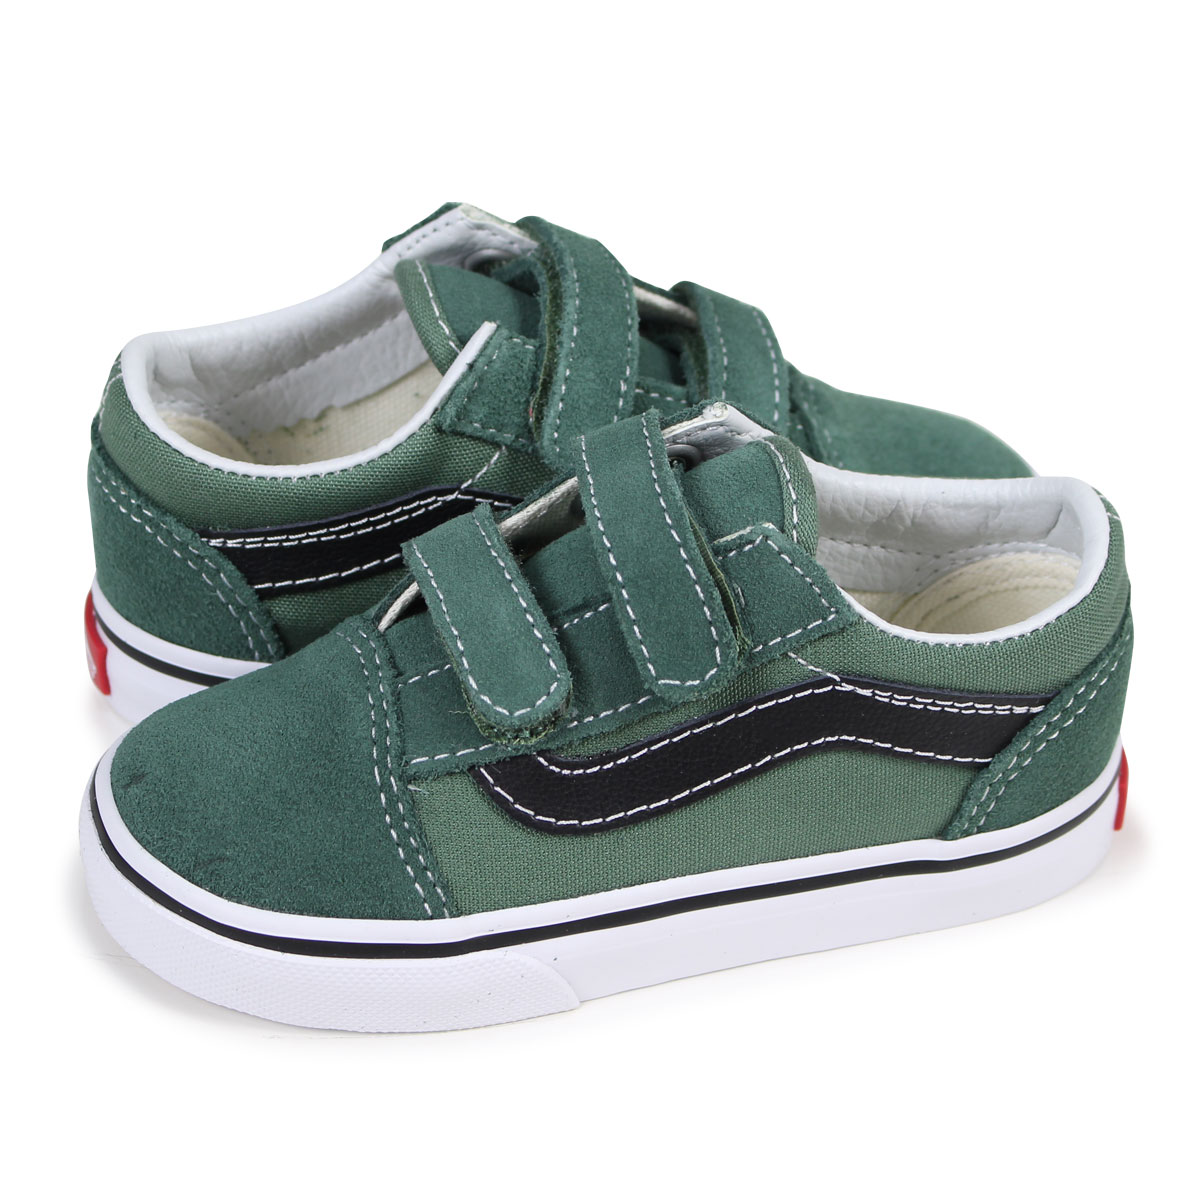 8438b9d50869 ALLSPORTS  VANS TODDLER OLD SKOOL VELCRO old school sneakers baby ...